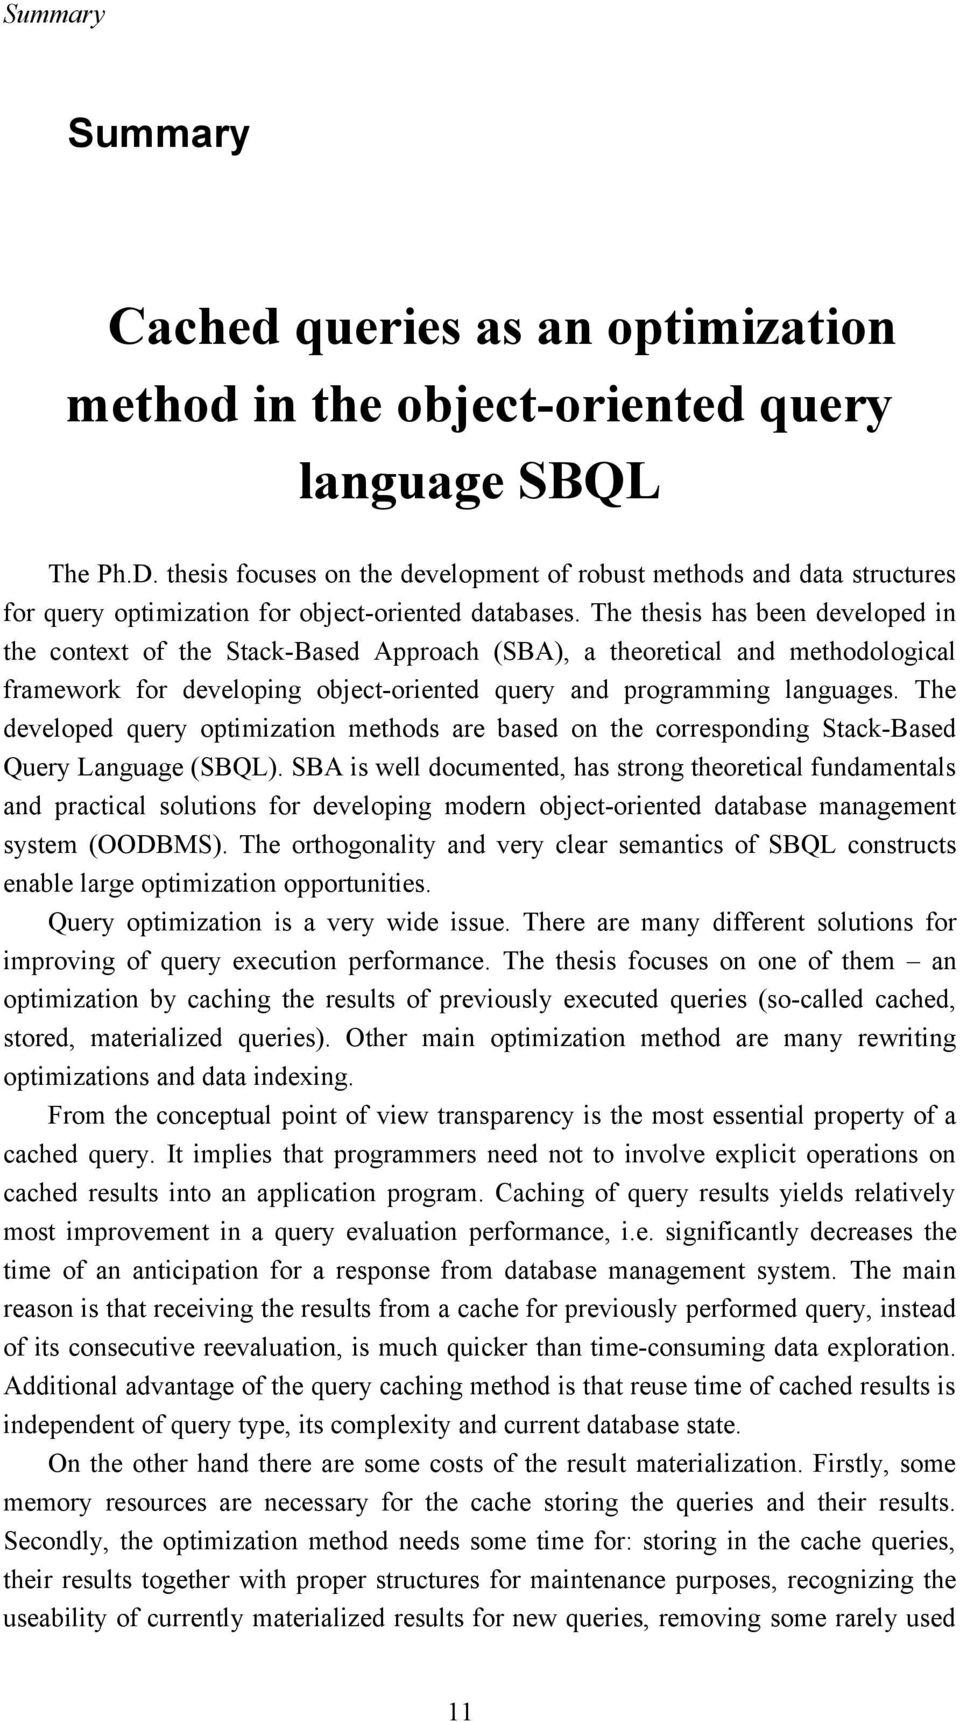 The thesis has been developed in the context of the Stack-Based Approach (SBA), a theoretical and methodological framework for developing object-oriented query and programming languages.